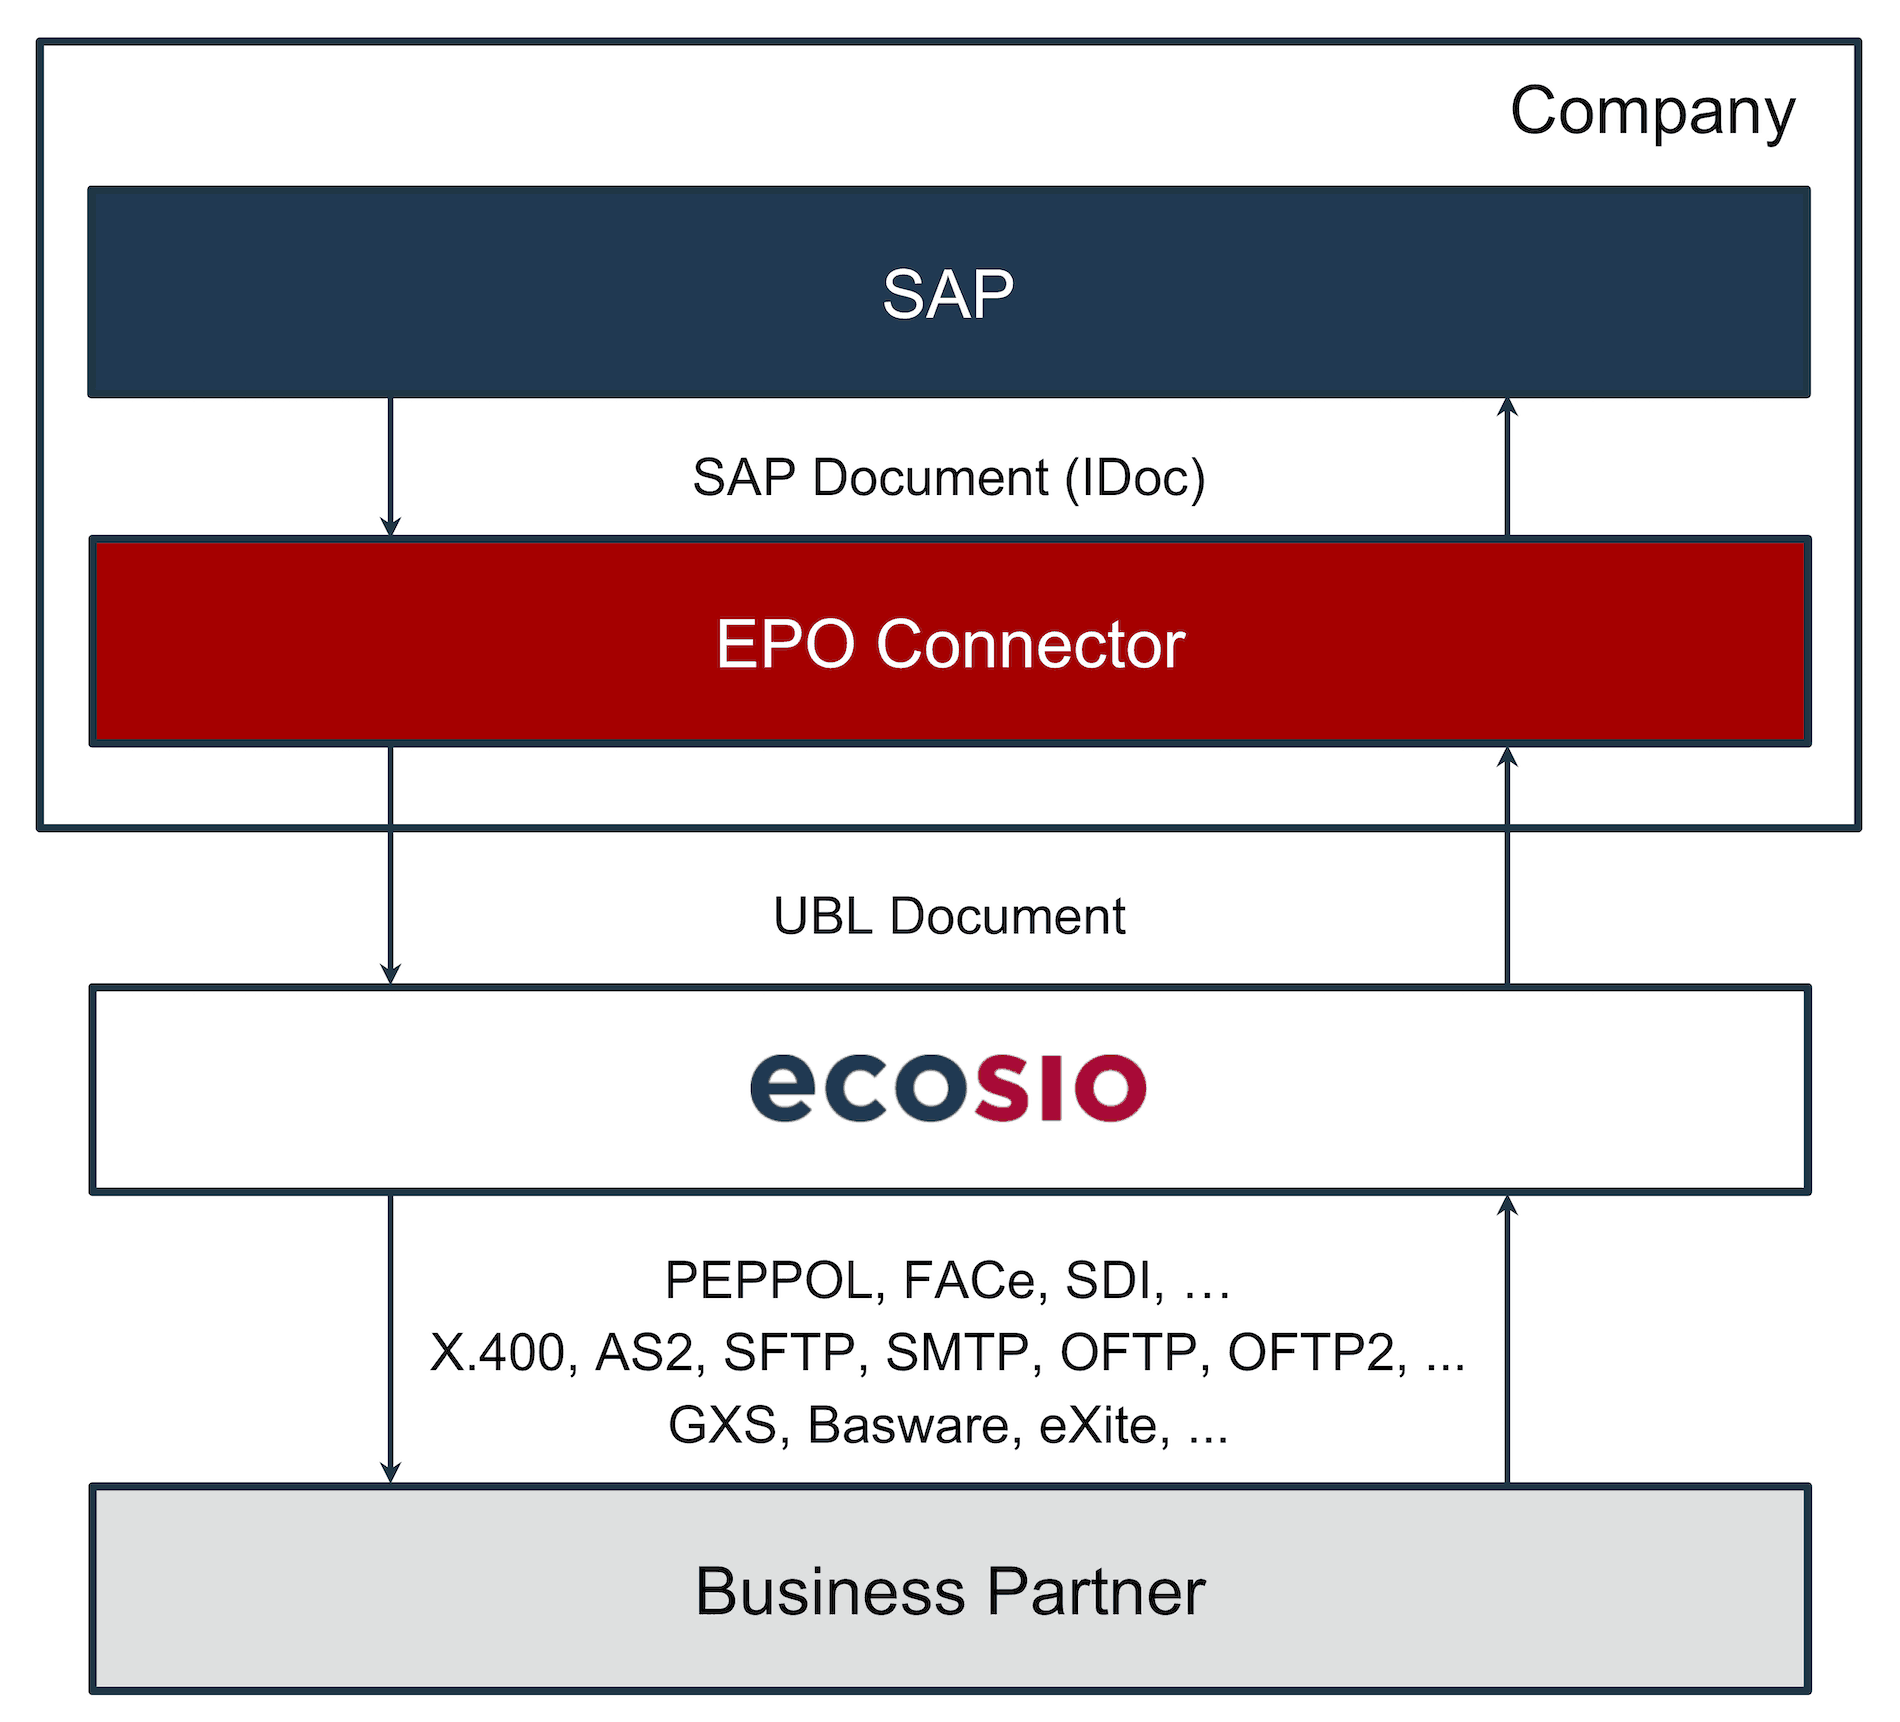 Conversion and Dispatch of UBL Documents with the EPO Connector and ecosio